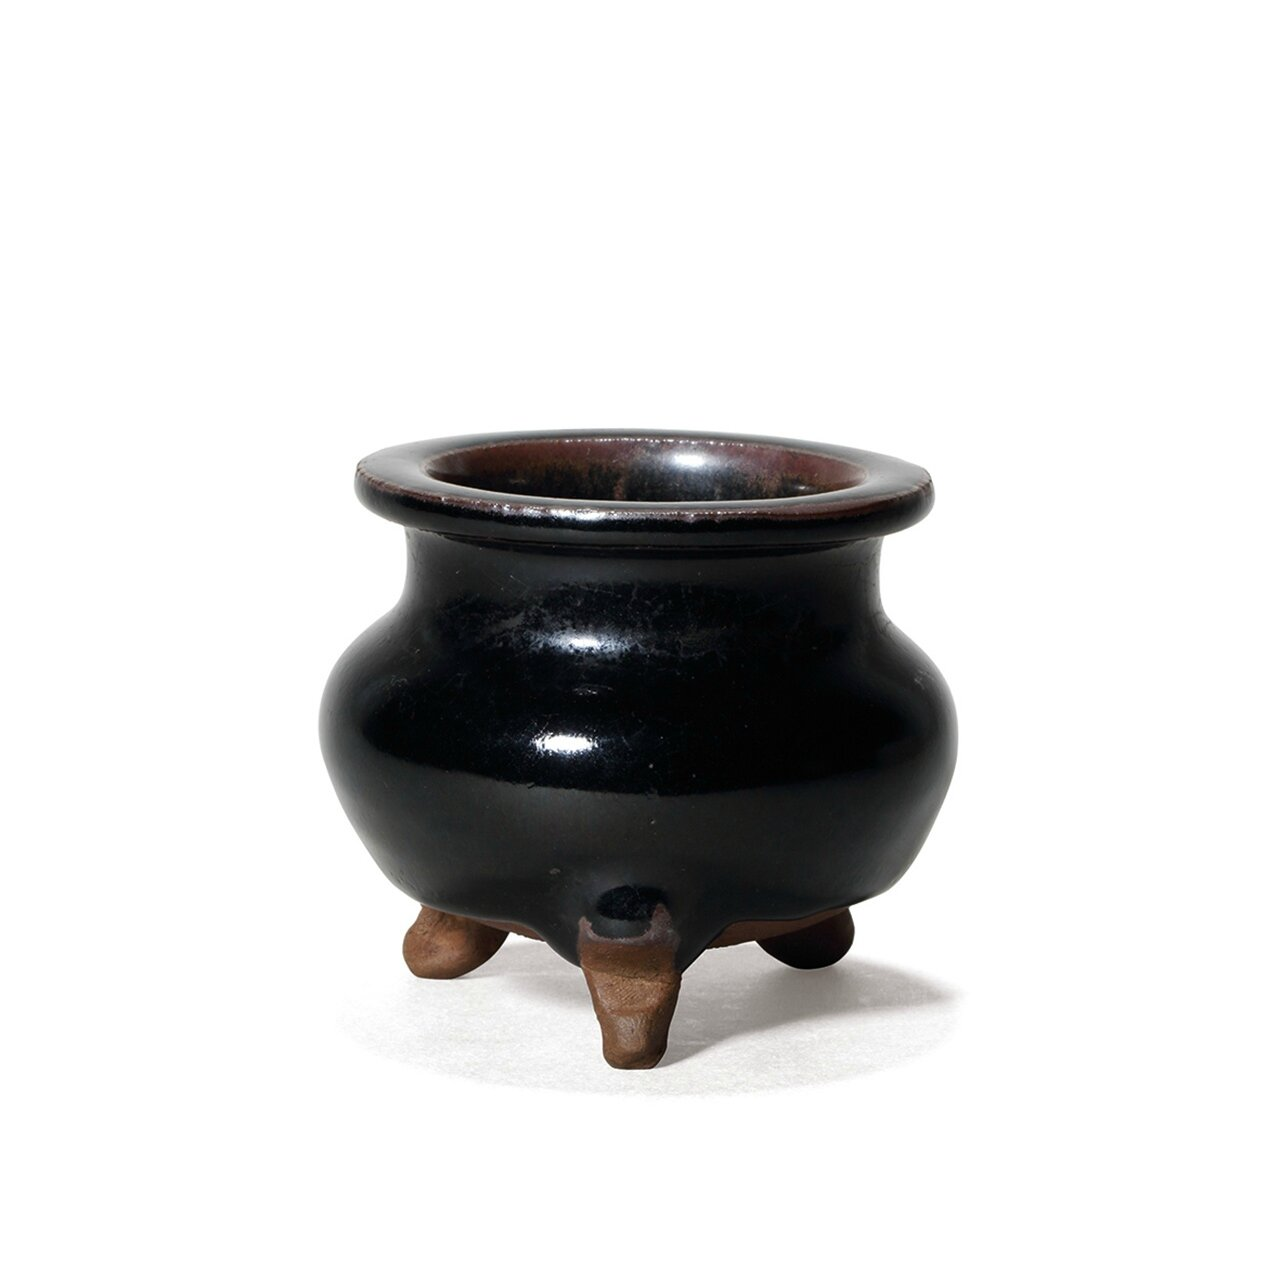 A very rare and small yaozhou black glazed censor, Jin Dynasty (AD1115-1234)